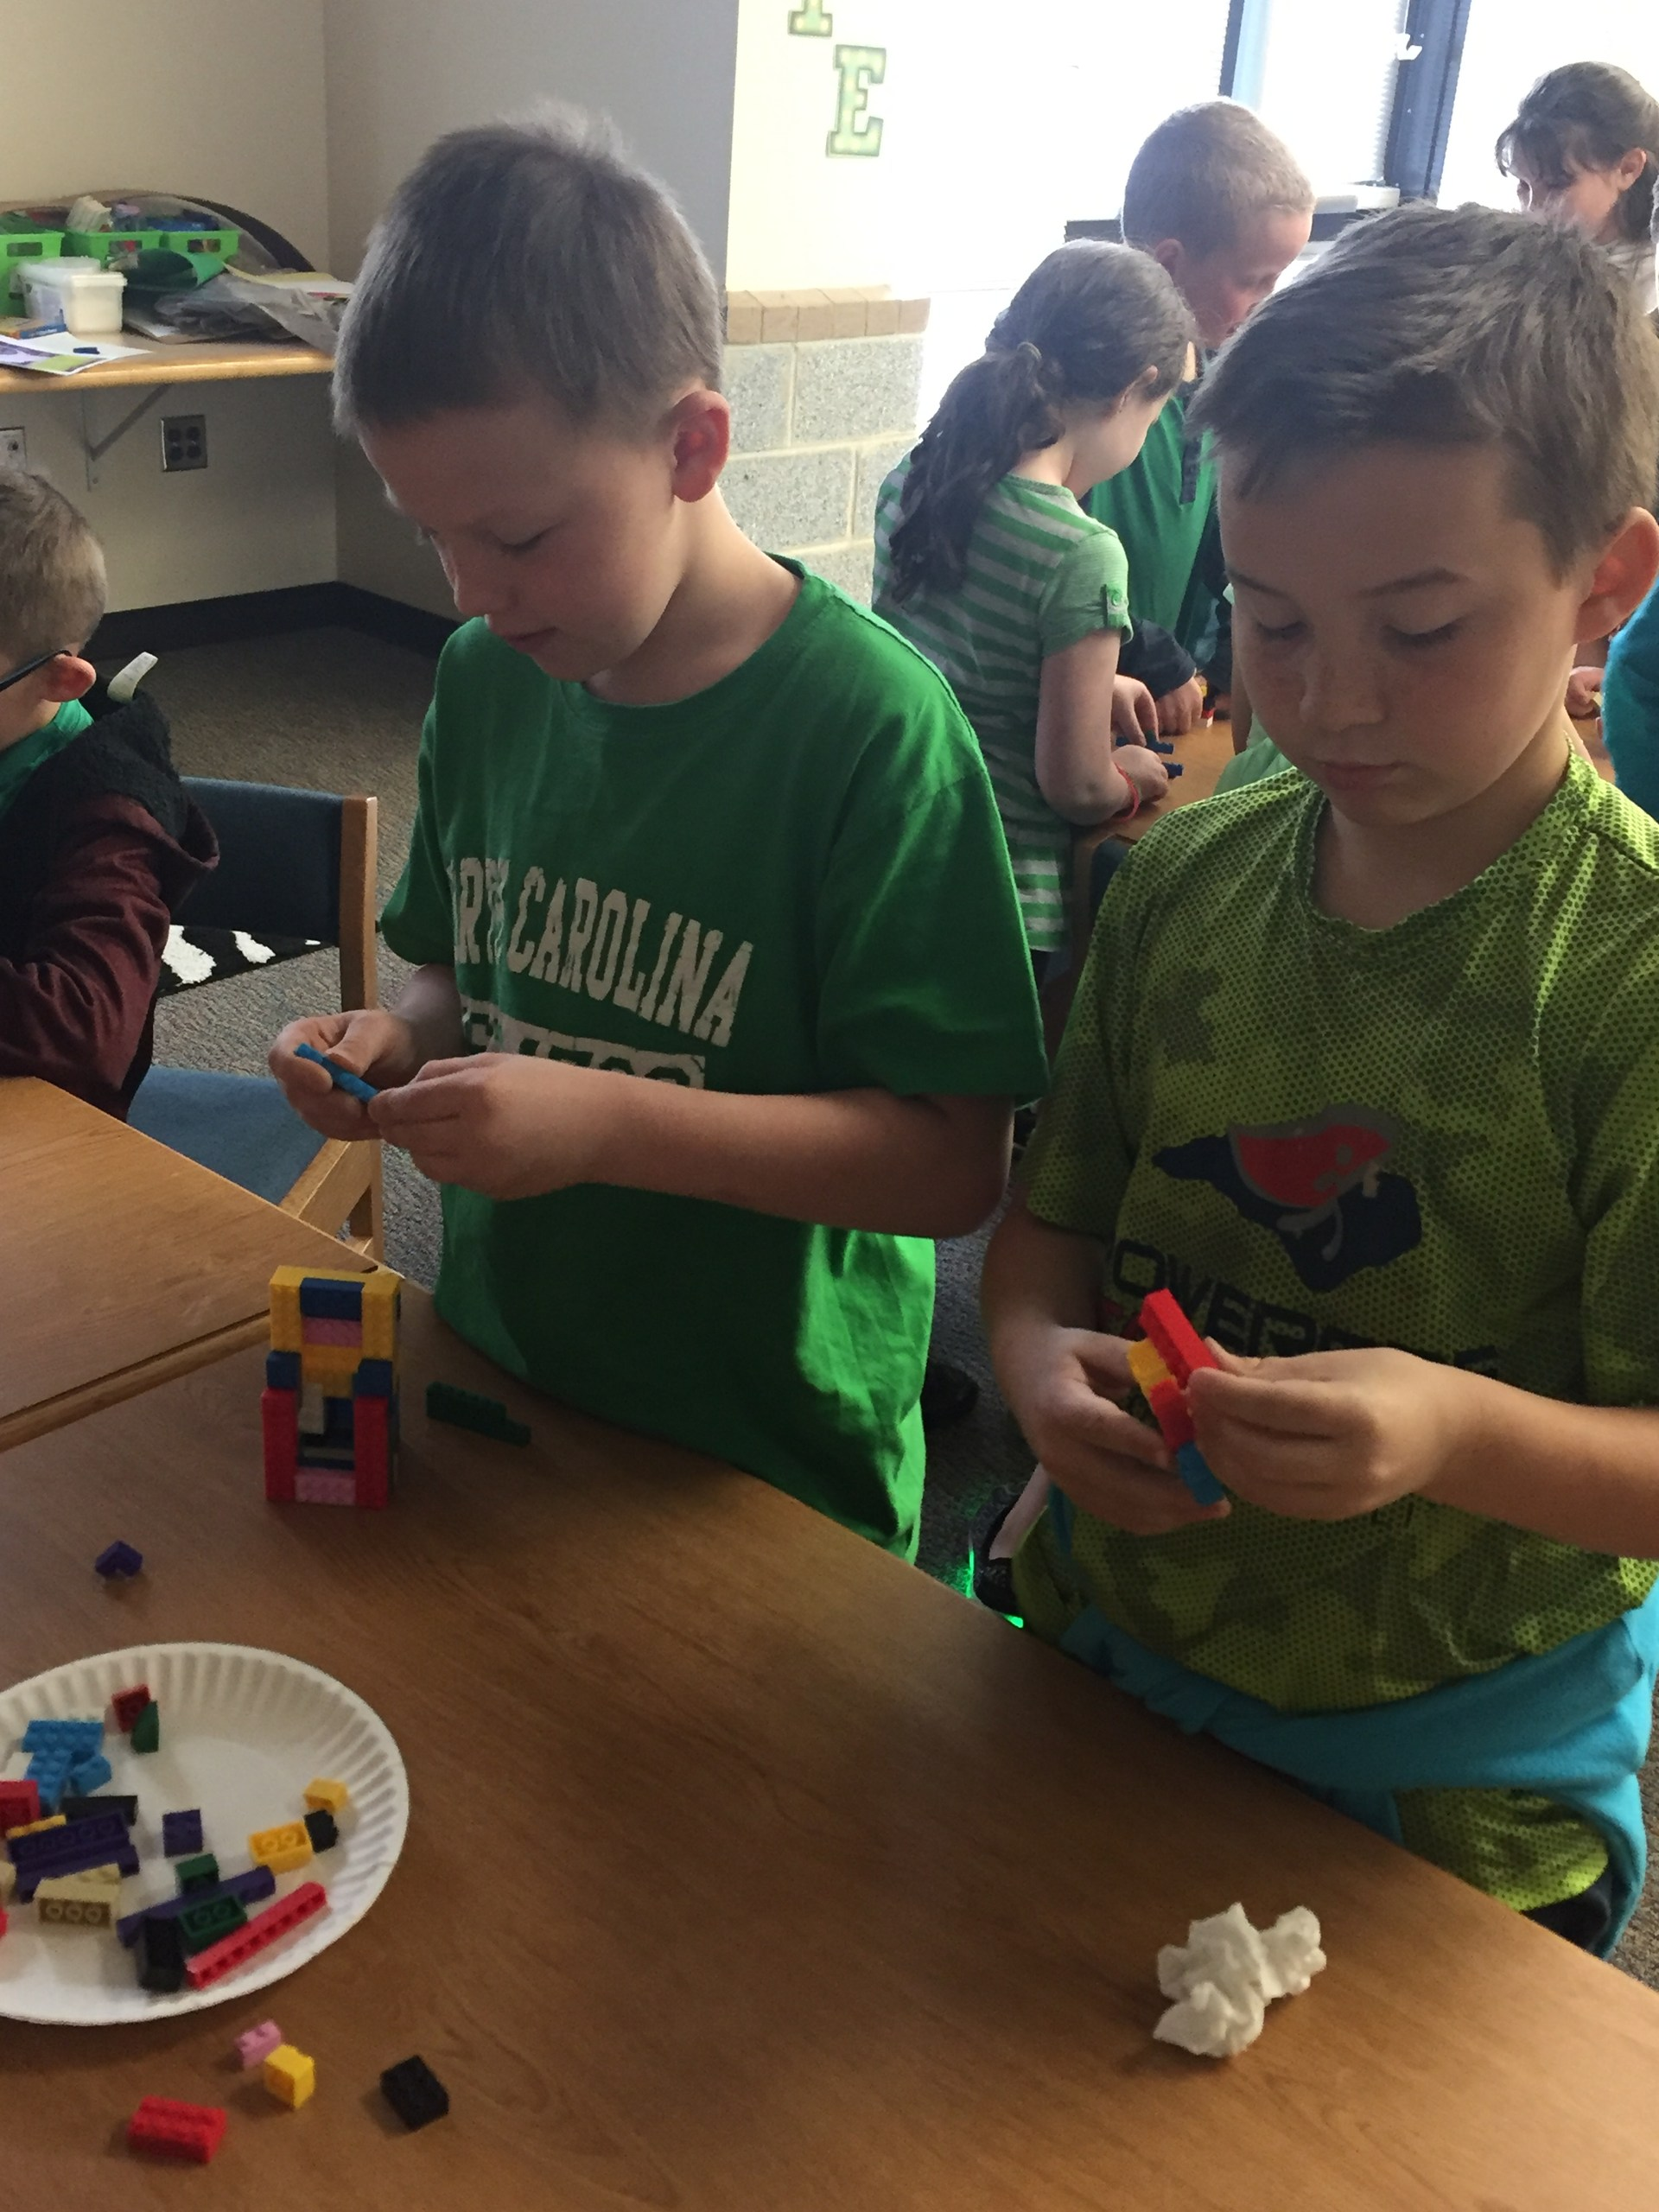 Students play with Legos